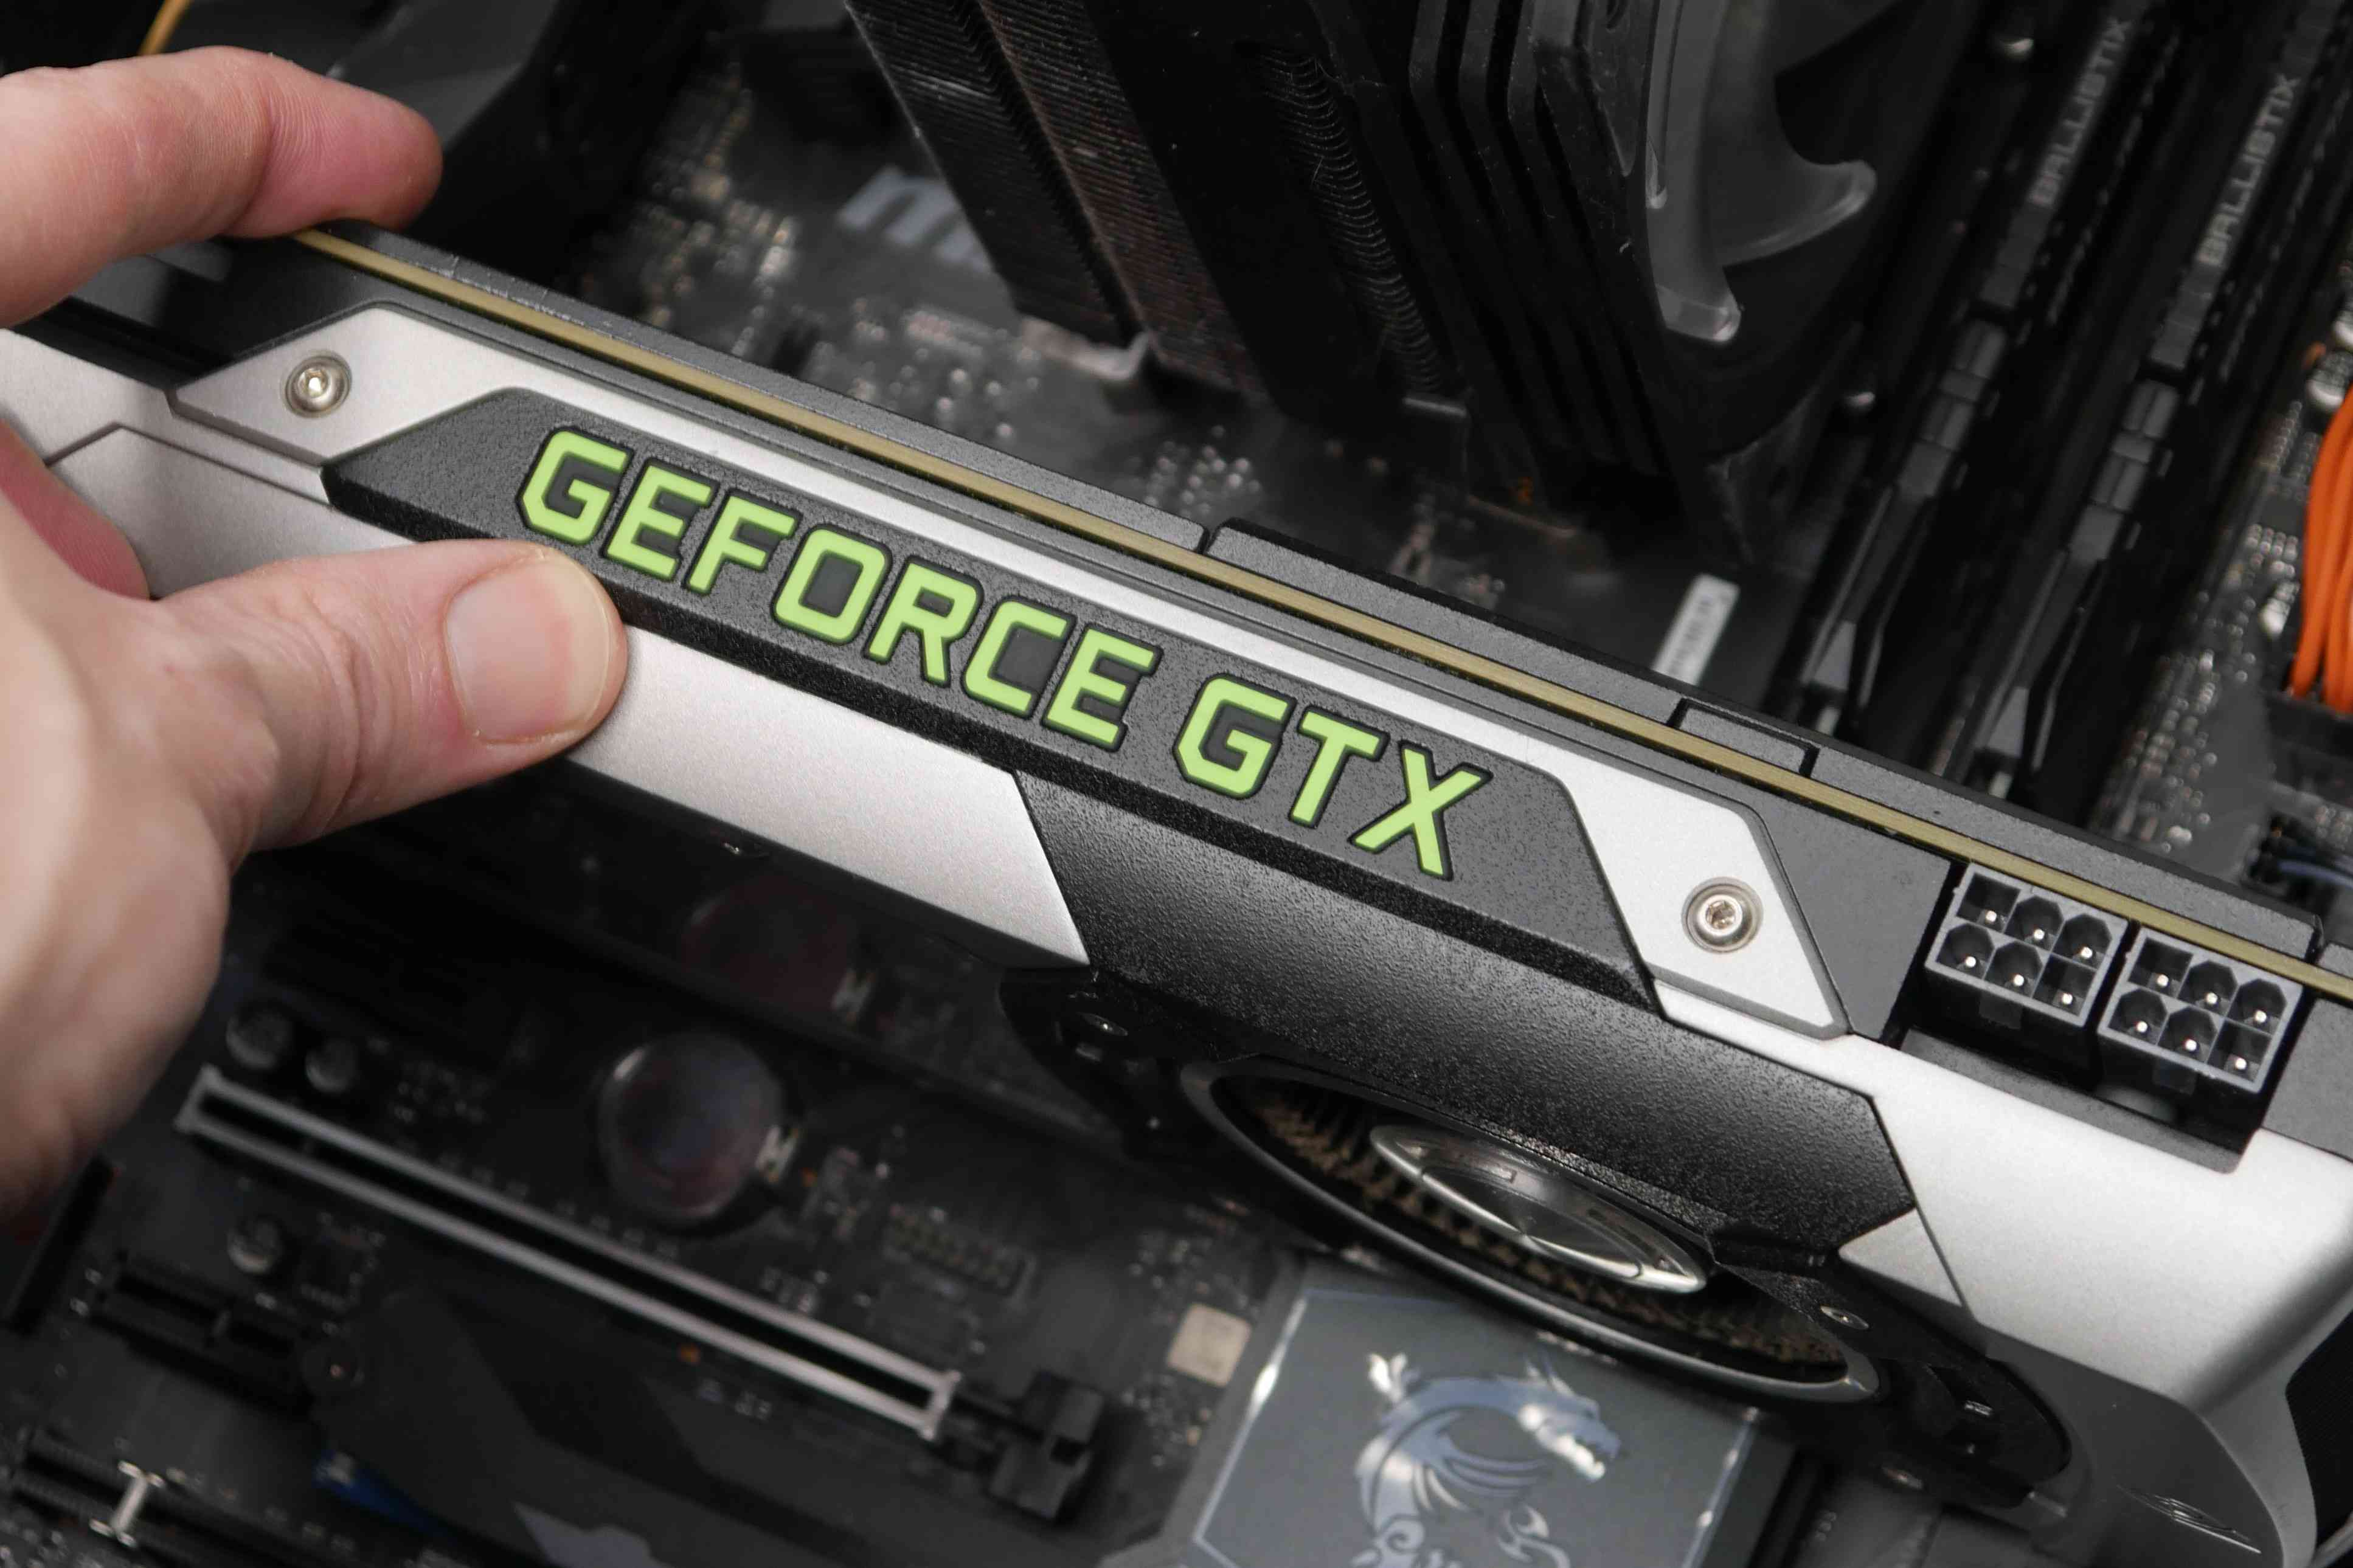 A photo of a graphics card installed in a computer